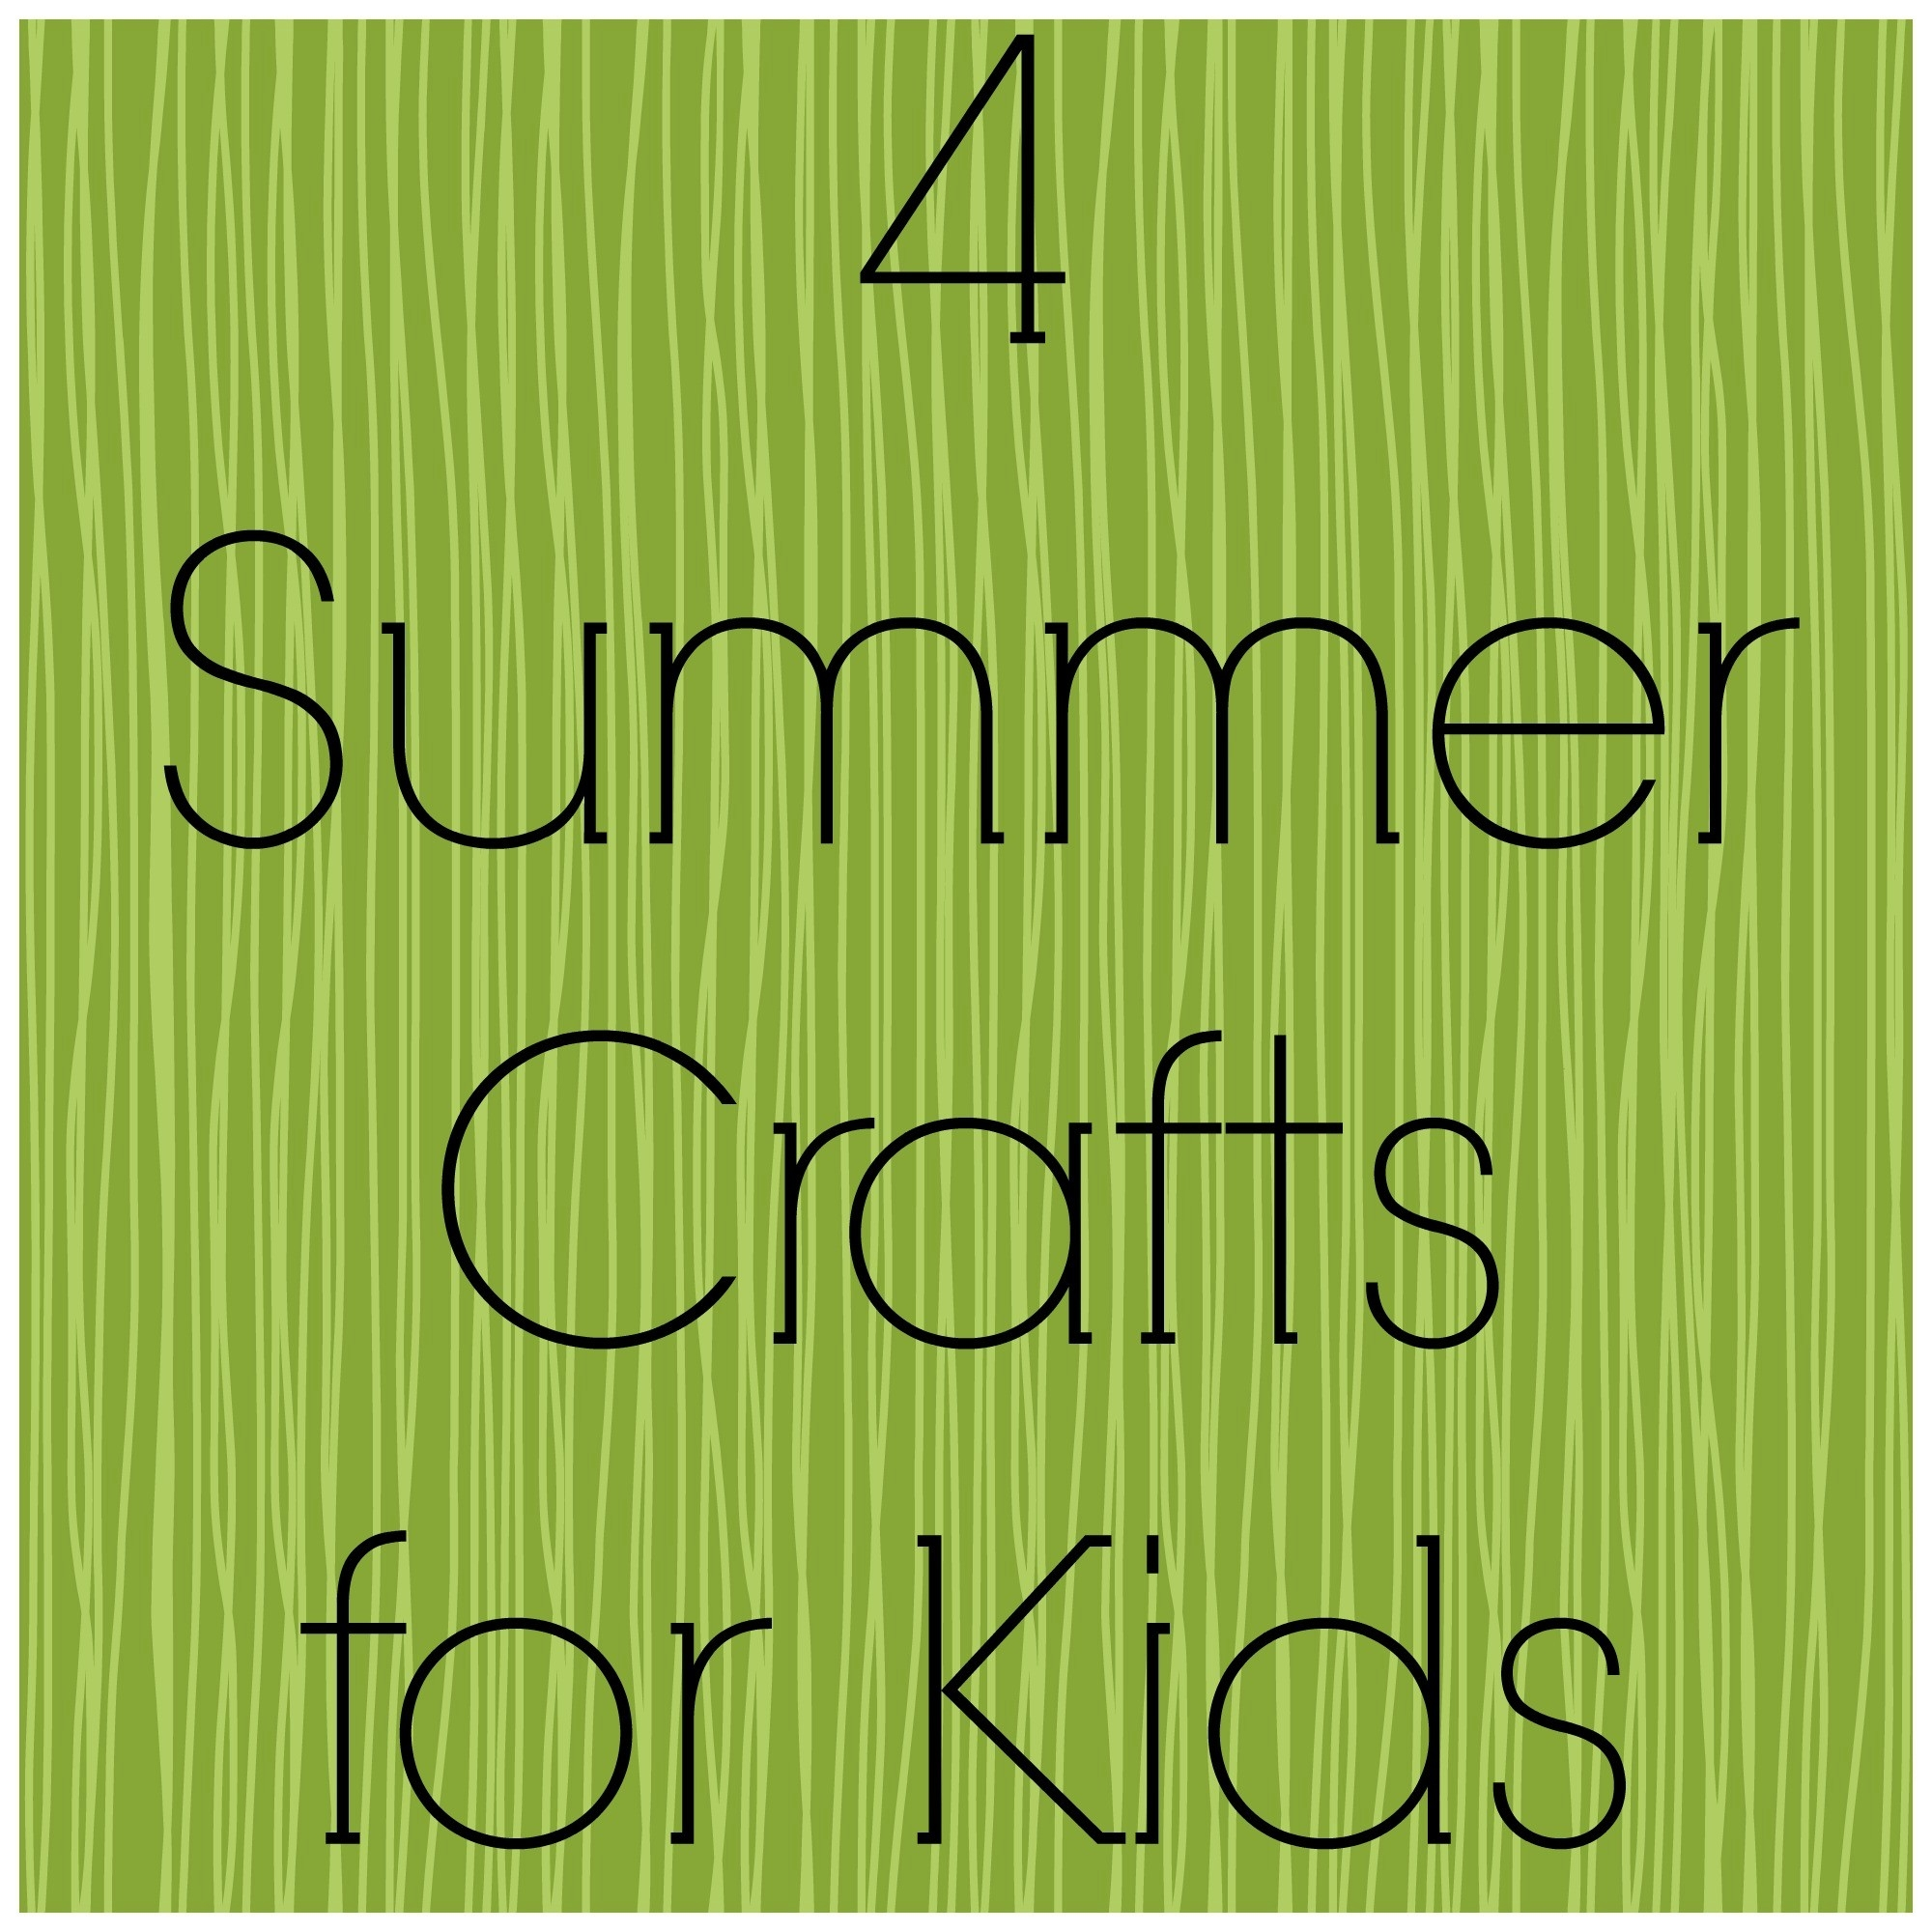 Horrible Diy Summer Crafts Together With Make It Wednesdays intended for Crafts For Kids To Do At Home For Summer 29391